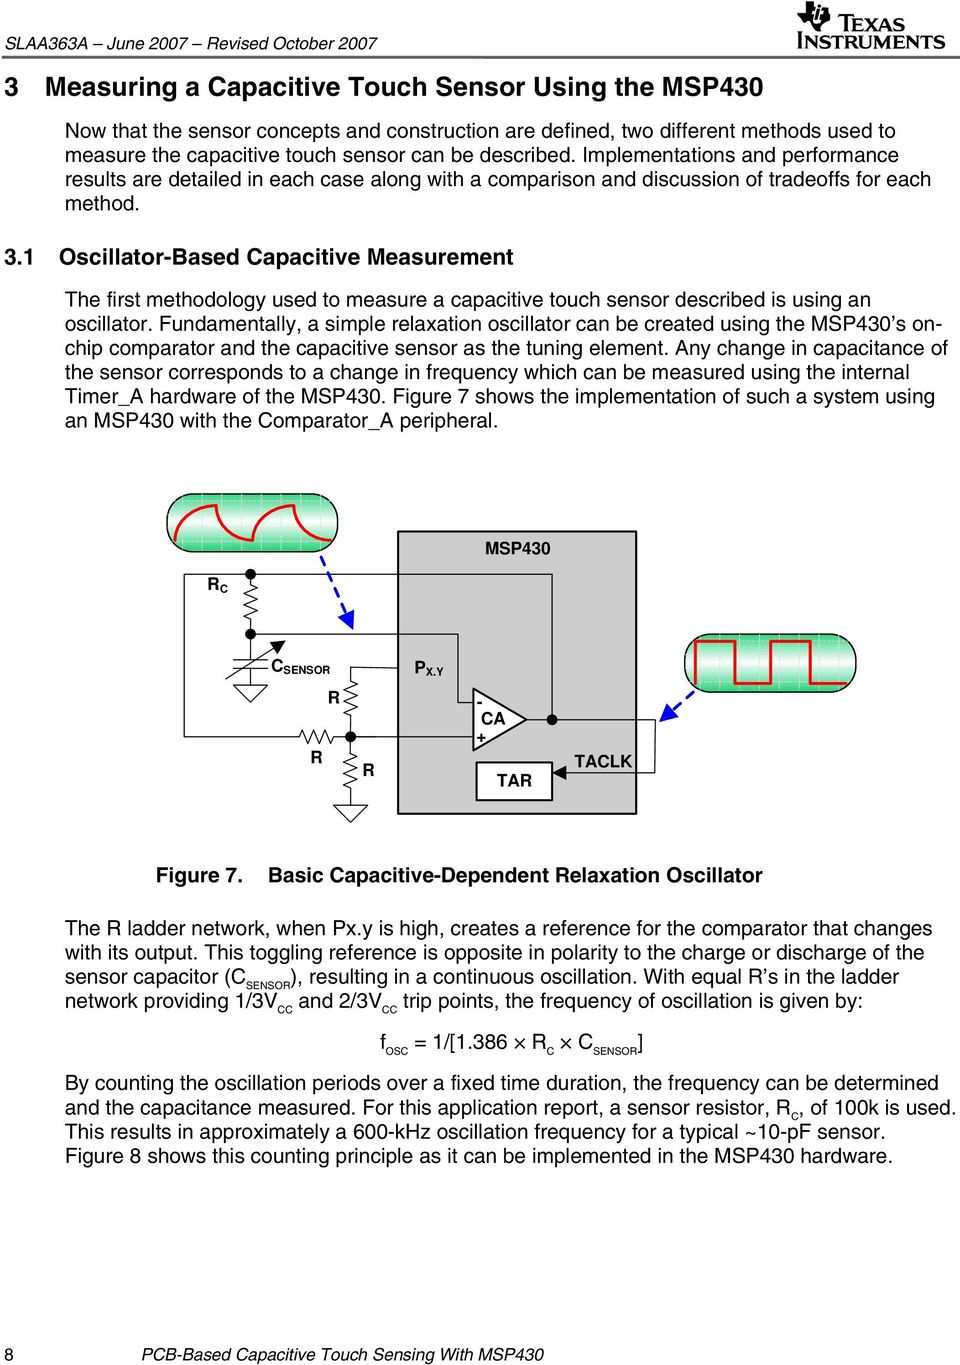 Pcb Based Capacitive Touch Sensing With Msp430 Pdf How To Build Simple Sensor Circuit Diagram 1 Oscillator Measurement The First Methodology Used Measure A